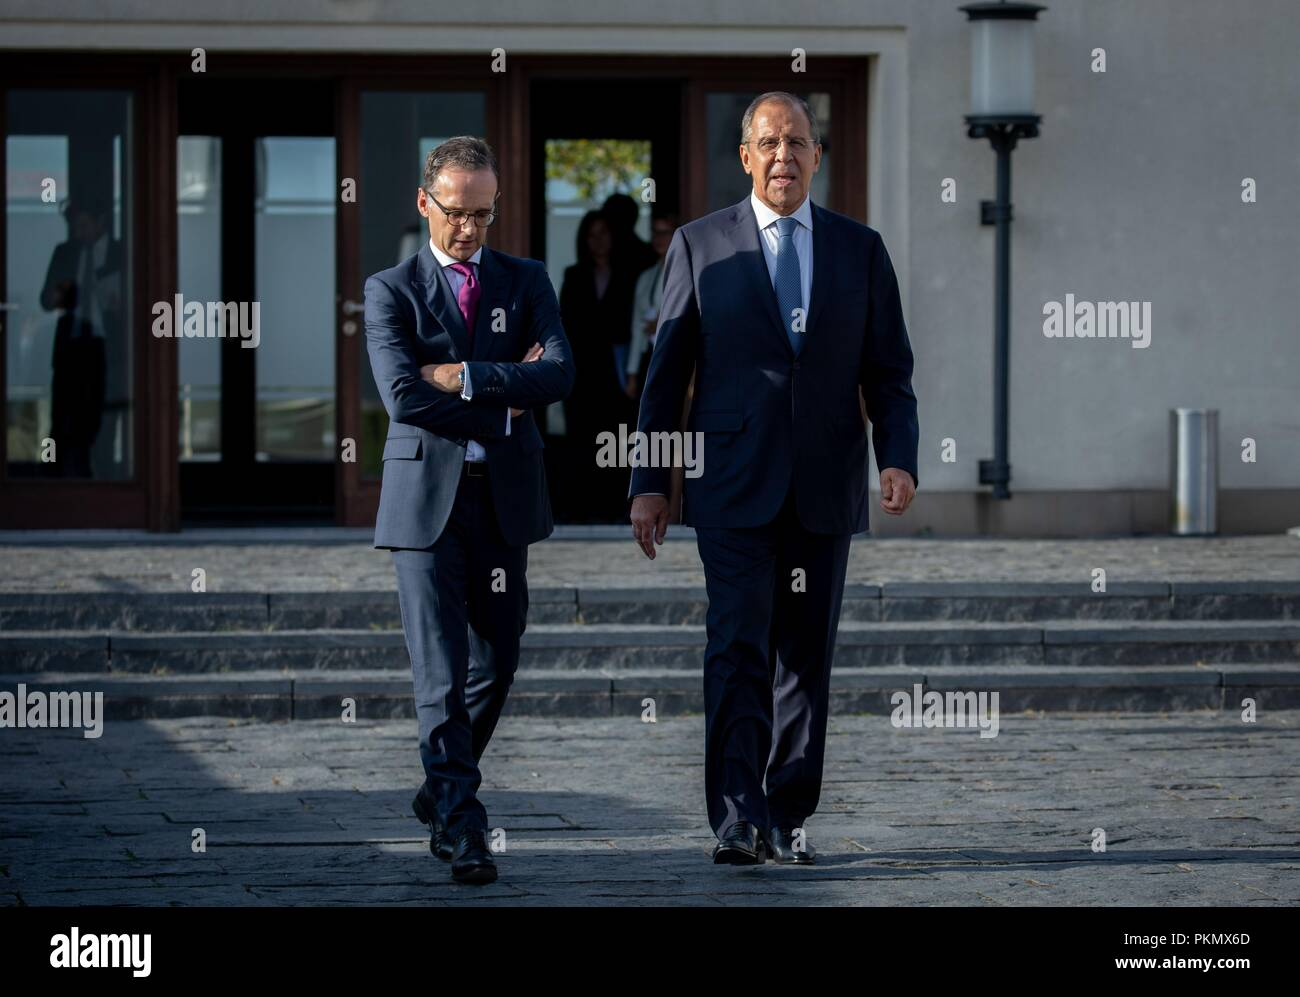 Berlin, Germany. 14 September 2018, Berlin: 14 September 2018, Germany, Berlin: Heiko Maas (SPD), German Foreign Minister, and Sergei Lavrov, Russian Foreign Minister, are going to the roof terrace of the Federal Foreign Office. Earlier, Maas and Lavrov gave a press conference after an interview. Photo: Kay Nietfeld/pool/dpa Credit: dpa picture alliance/Alamy Live News - Stock Image